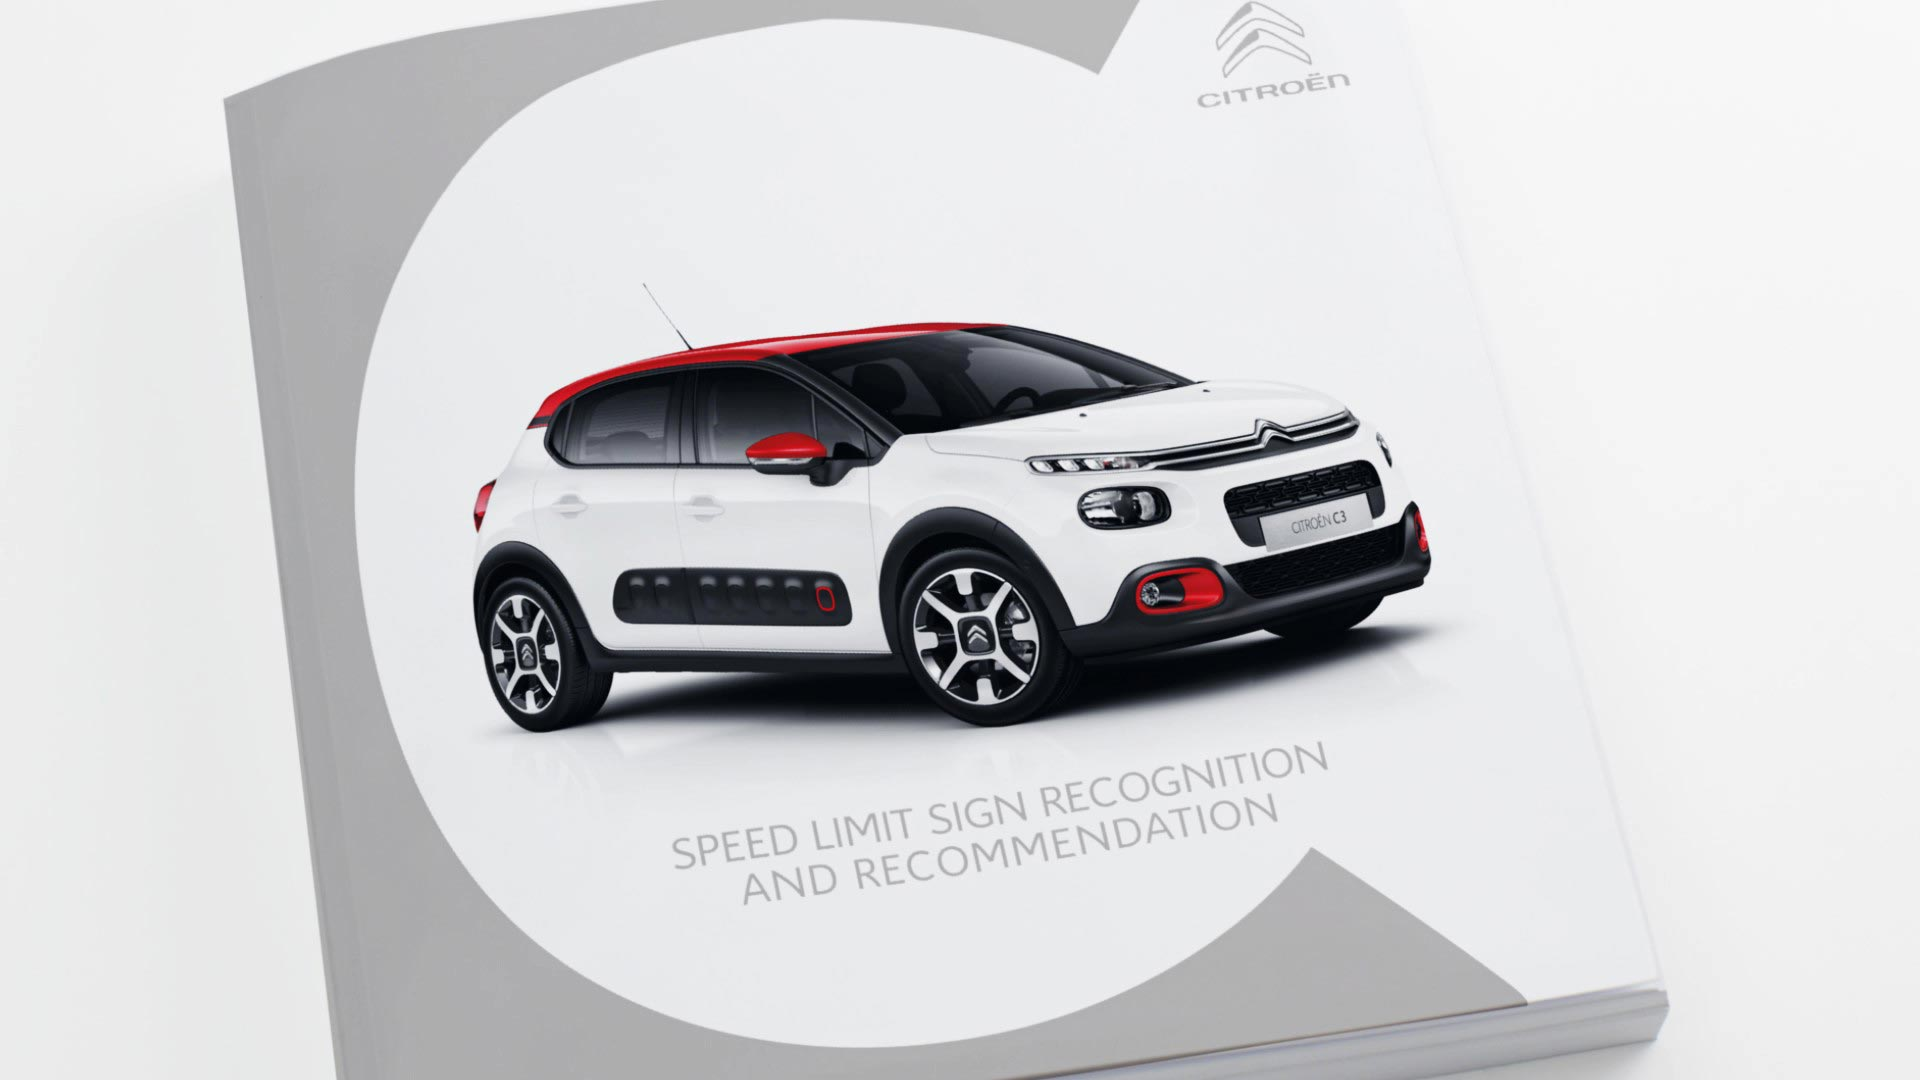 Citroen C3 Tutorial Video - Speed Limit Sign Recognition and Recommendation